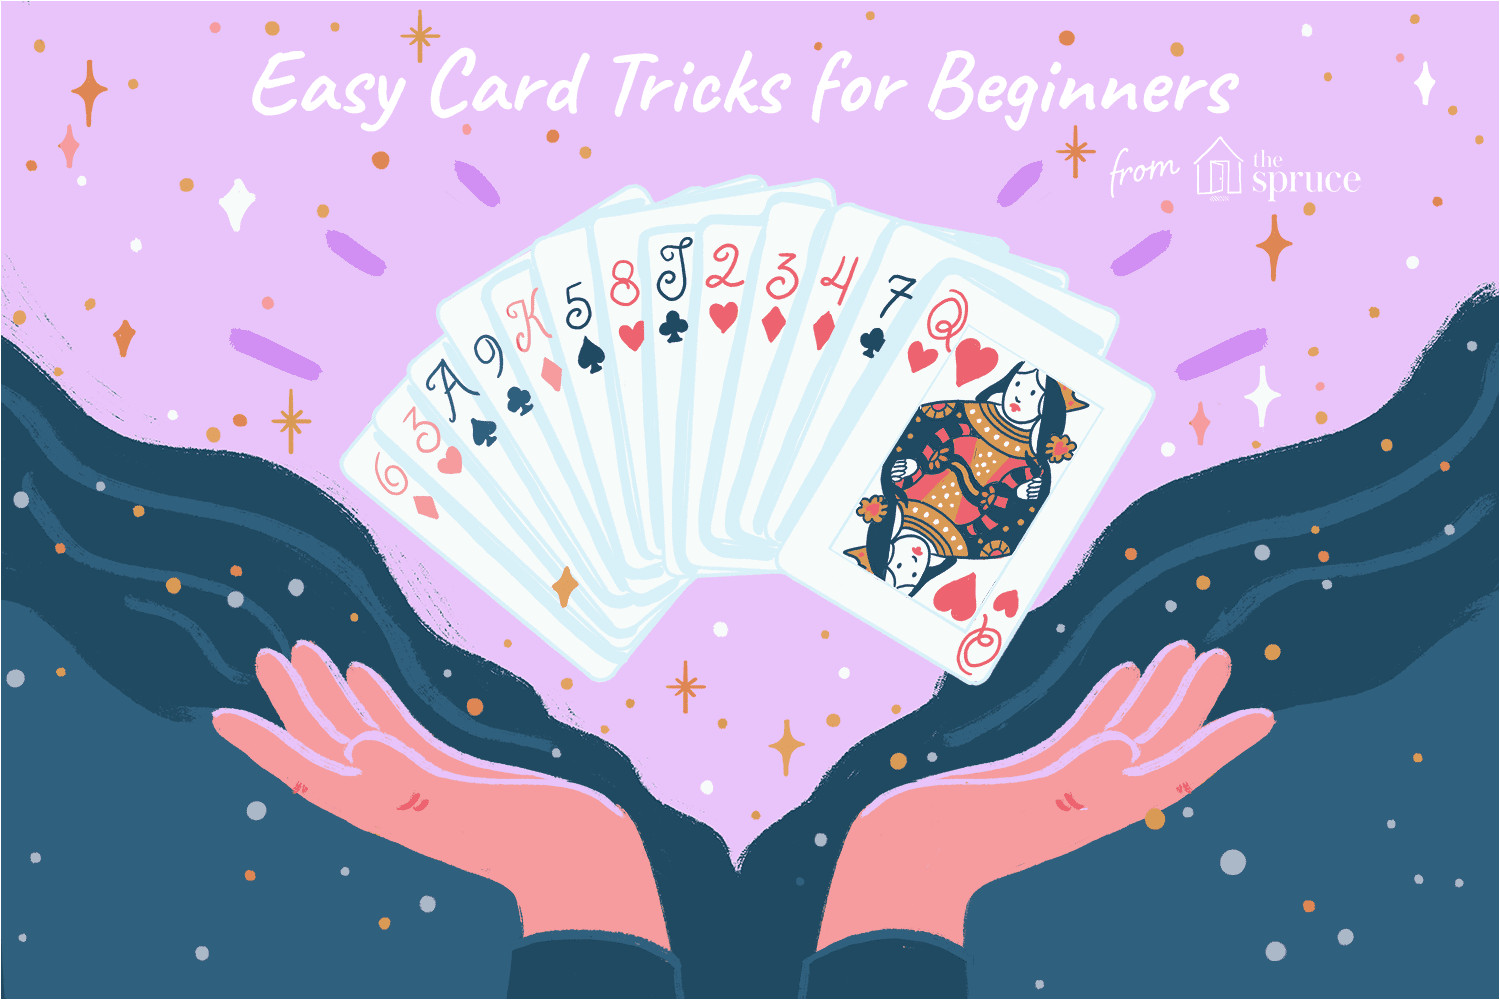 Easy Quick Card Tricks Beginners Easy Card Tricks that Kids Can Learn